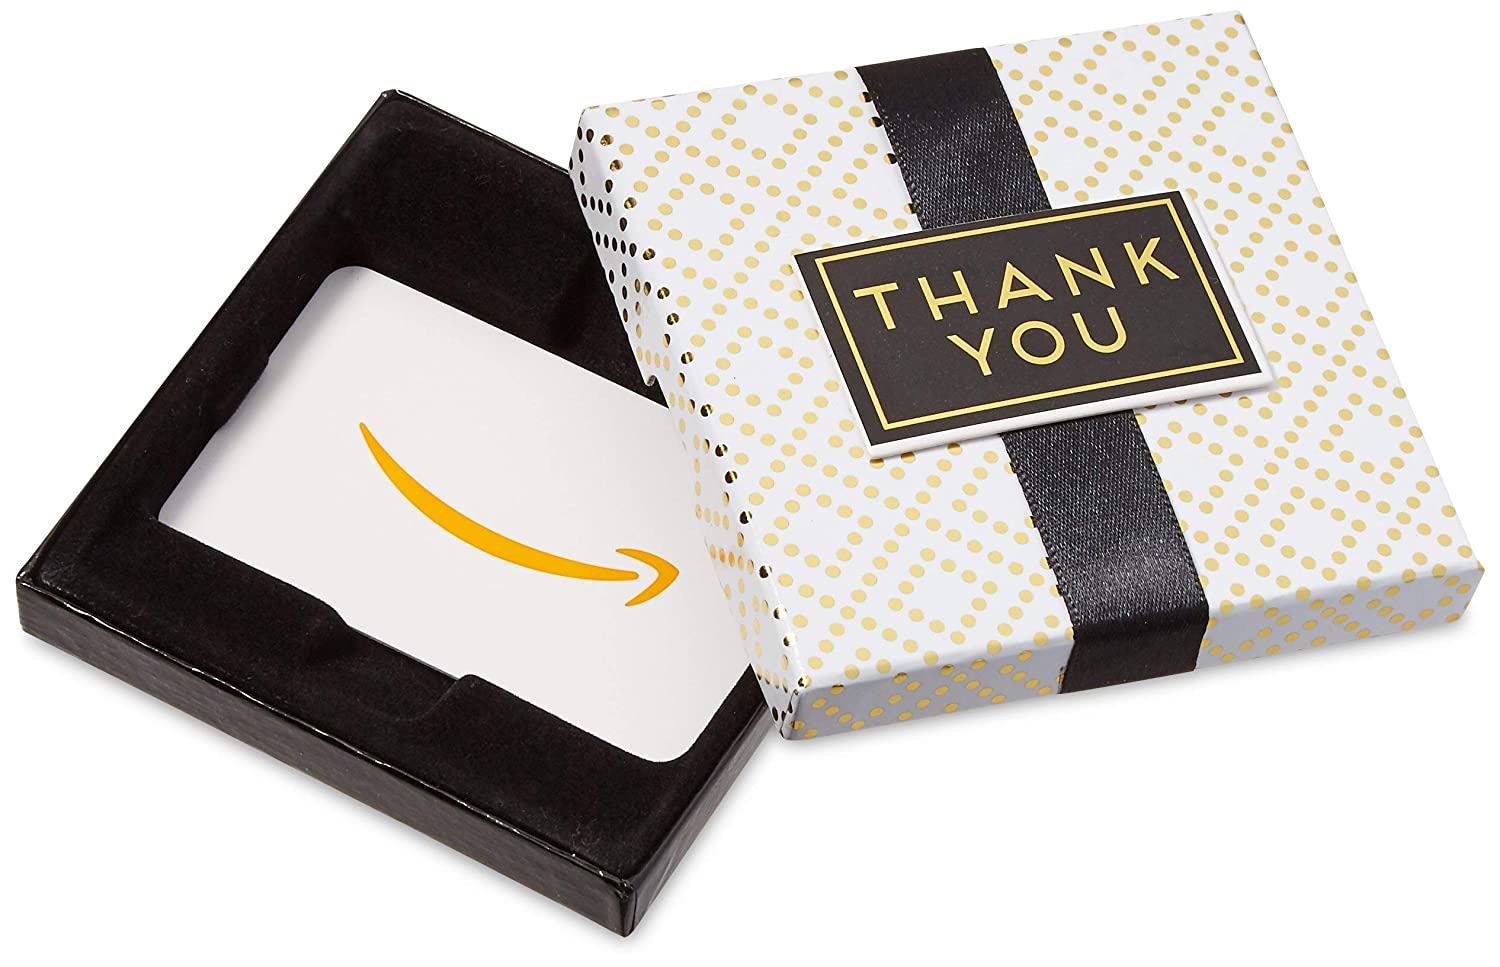 .com Gift Card in a Thank You Box VariableDenomination